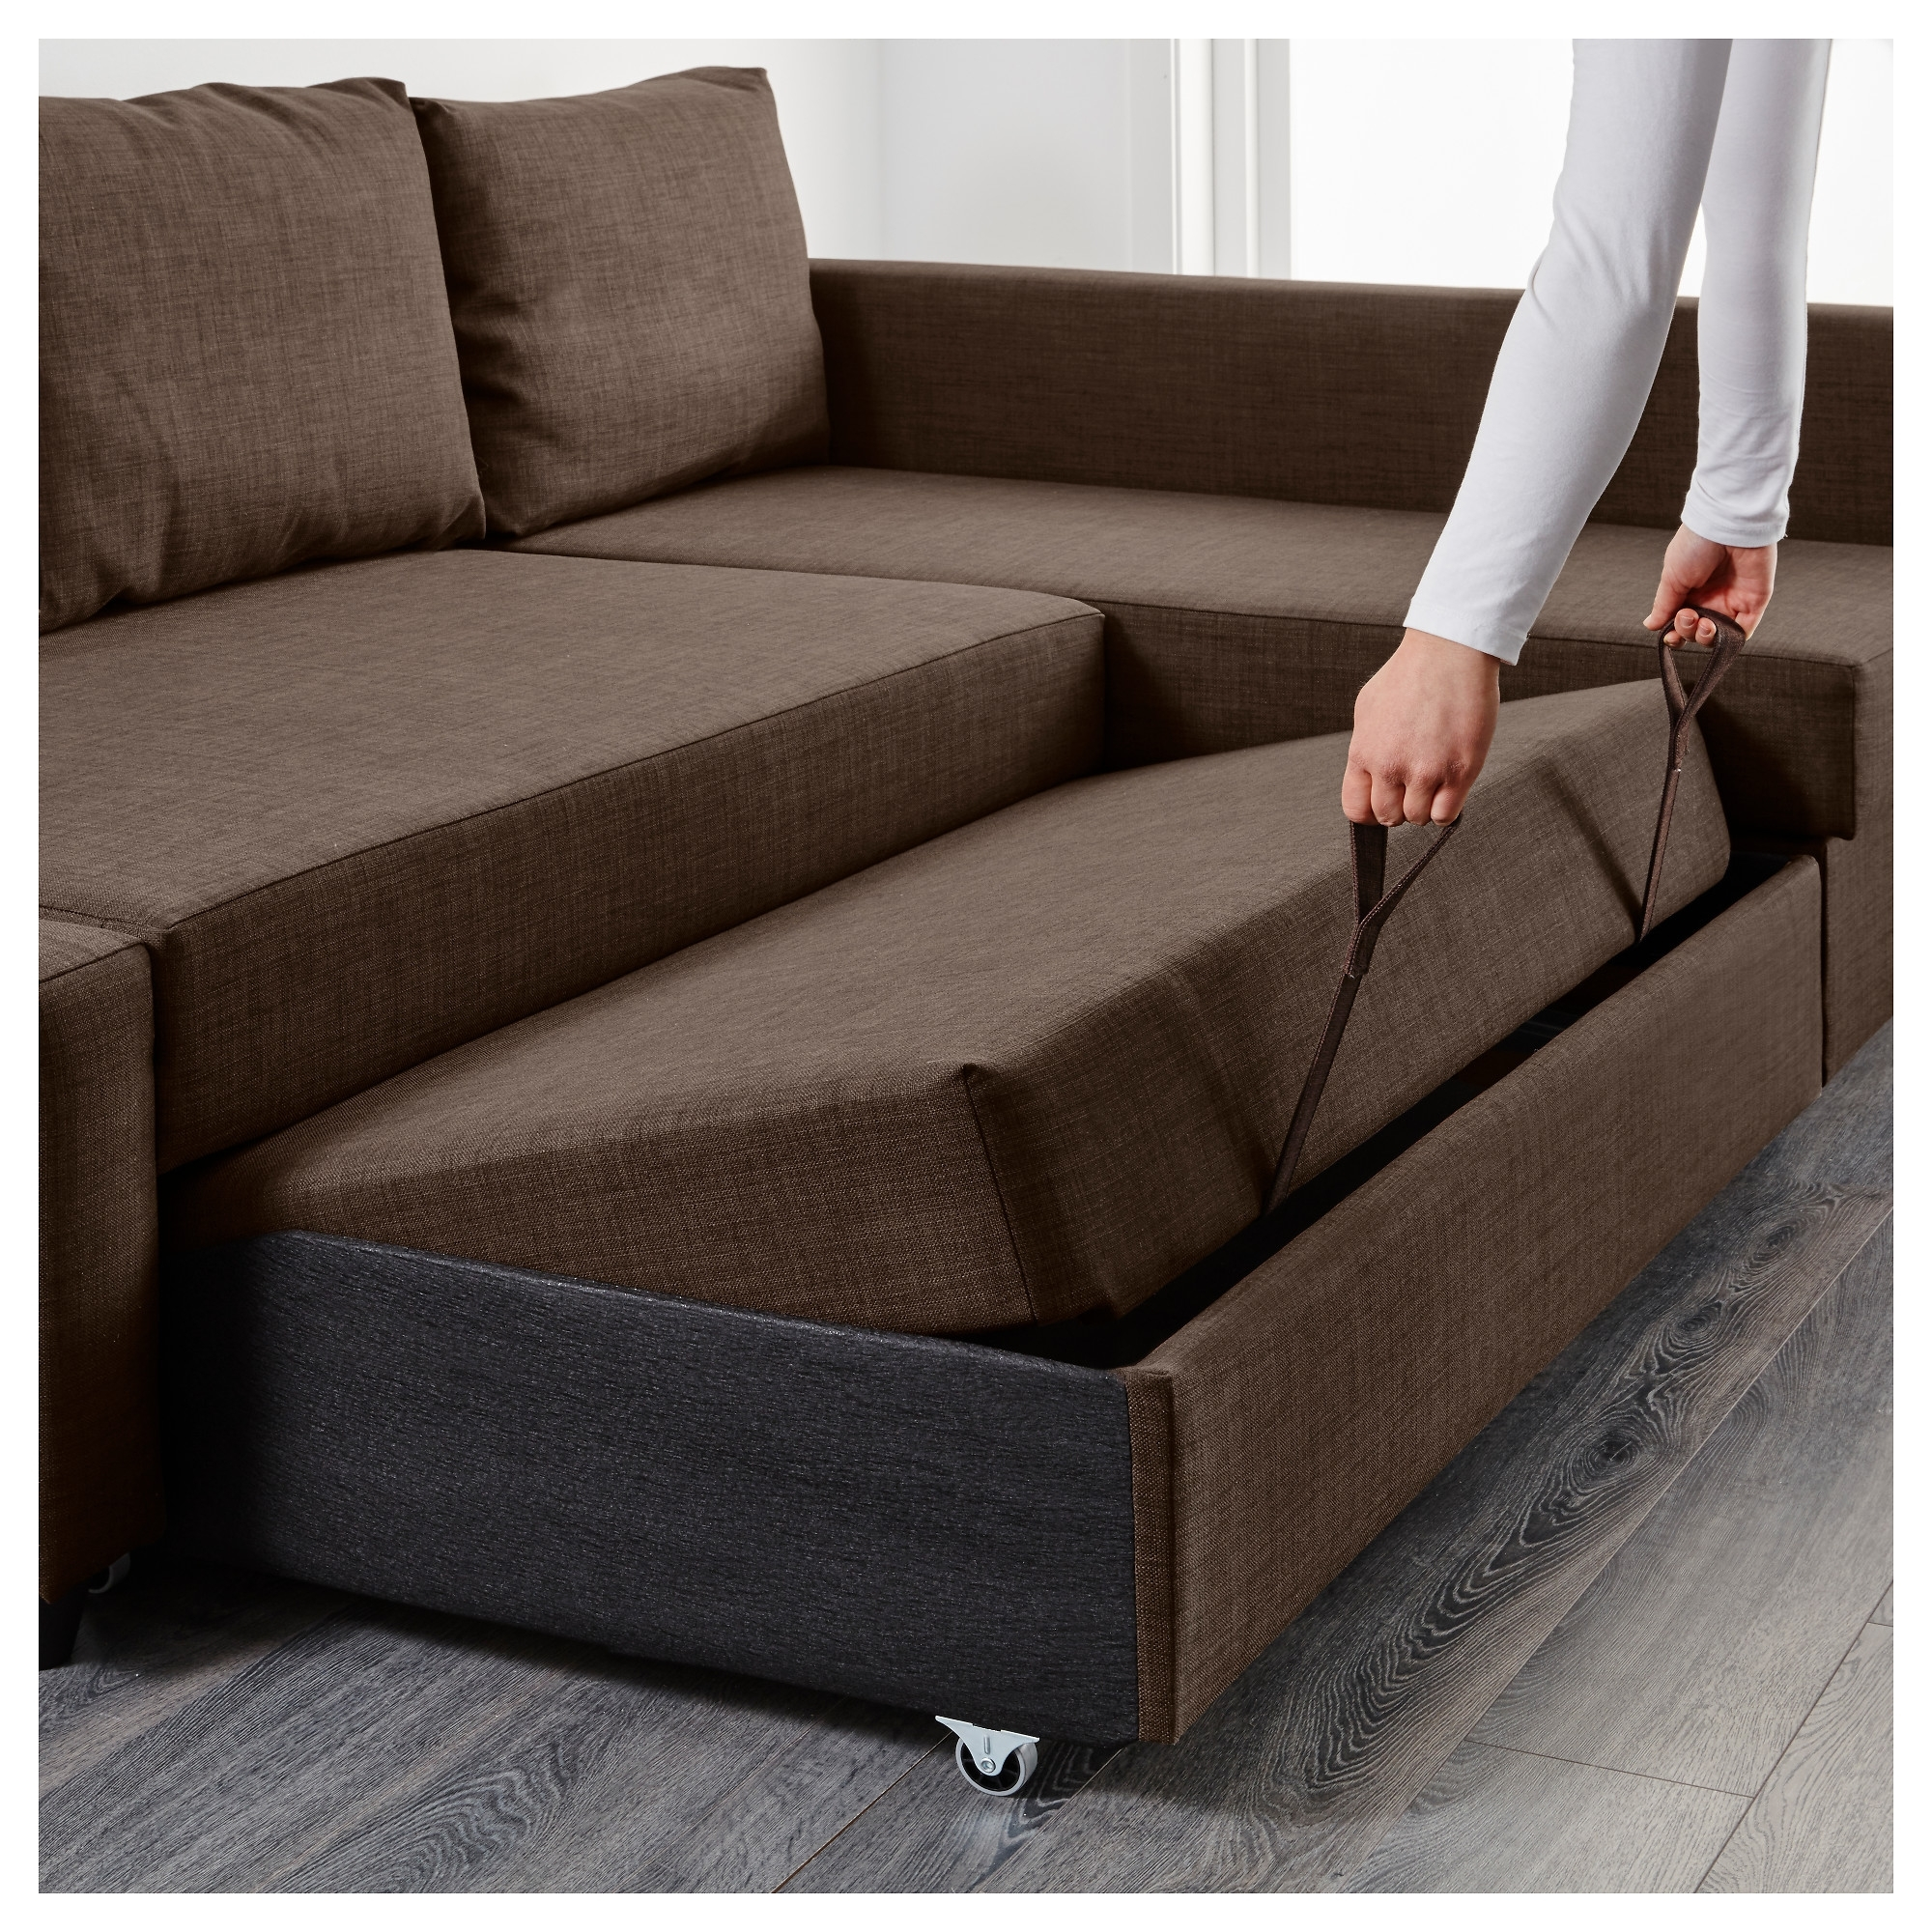 Friheten Sleeper Sectional,3 Seat W/storage – Skiftebo Dark Gray Within Famous Removable Covers Sectional Sofas (View 2 of 15)